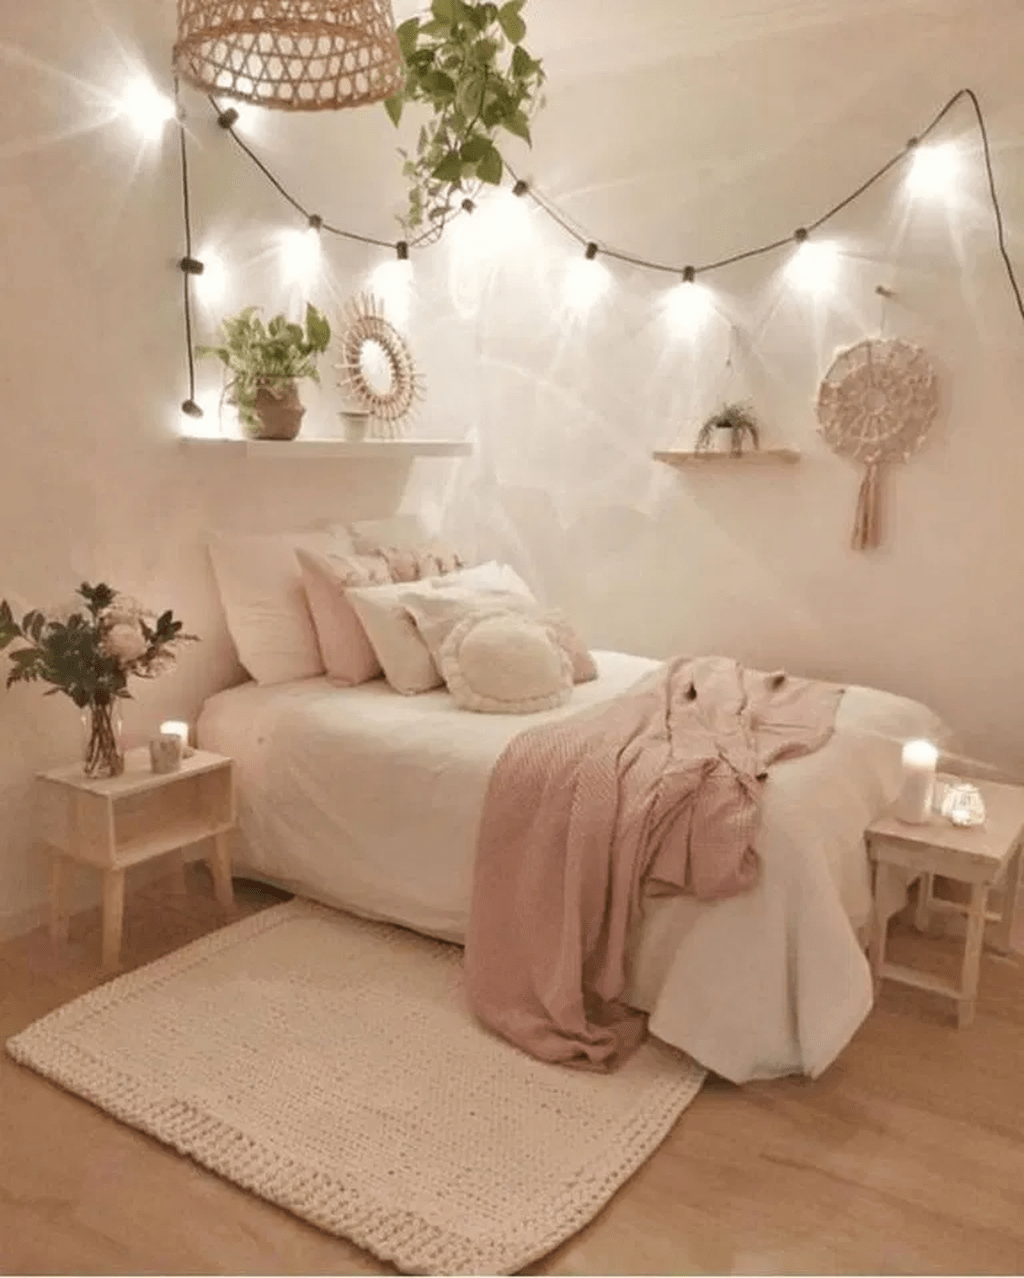 35 Inspiration For Small Space Bedroom Decorating Ideas 35 Inspiration For Small Spa In 2020 Small Apartment Bedrooms Apartment Bedroom Design Aesthetic Bedroom